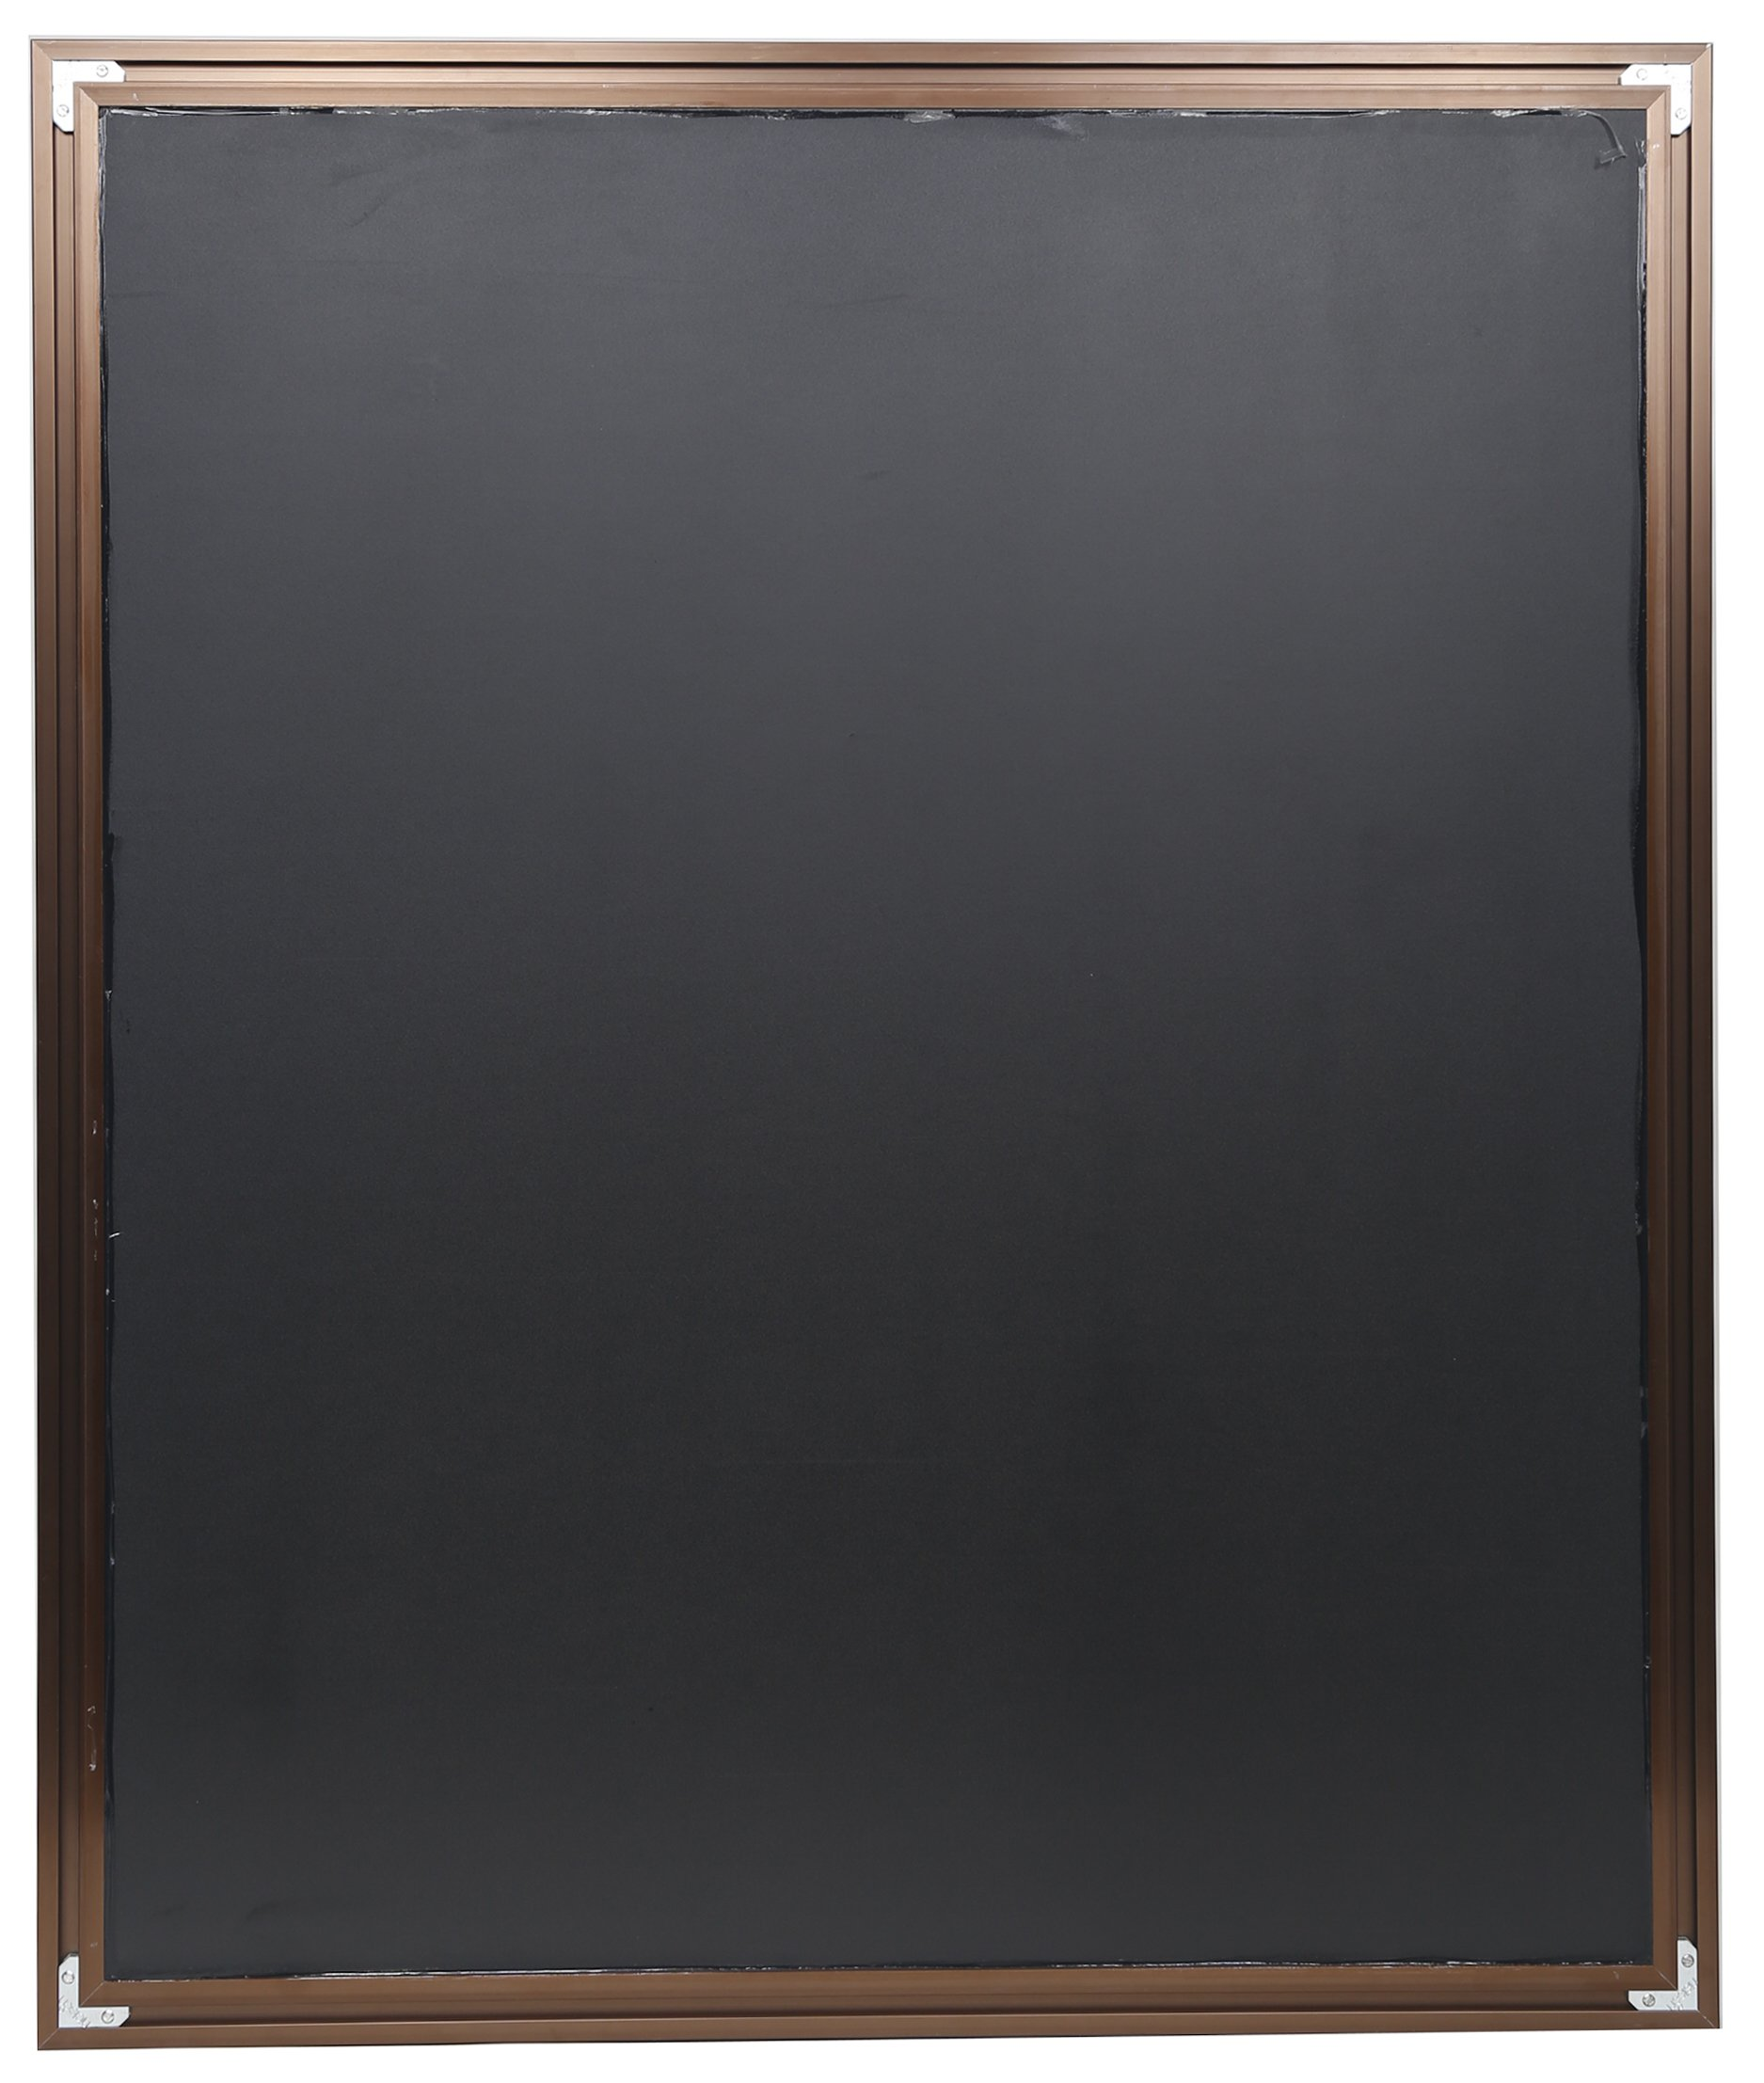 Nielsen Bainbridge 24x30 Rectangular Aluminum Wall Mirror | Vanity Mirror, Bedroom or Bathroom | Hangs Horizontal or Vertical | Brushed Bronze - Contemporary vanity mirror with 1 1/4 wide frame profile in a brushed bronze finish Outer dimensions measure 26.5 inches x 32.5 inches. Mirror dimensions measure 24 inches x 30 inches Mirror includes ready-to-hang durable hangers on the back for vertical or horizontal hanging options - bathroom-mirrors, bathroom-accessories, bathroom - 81103xrtgCL -